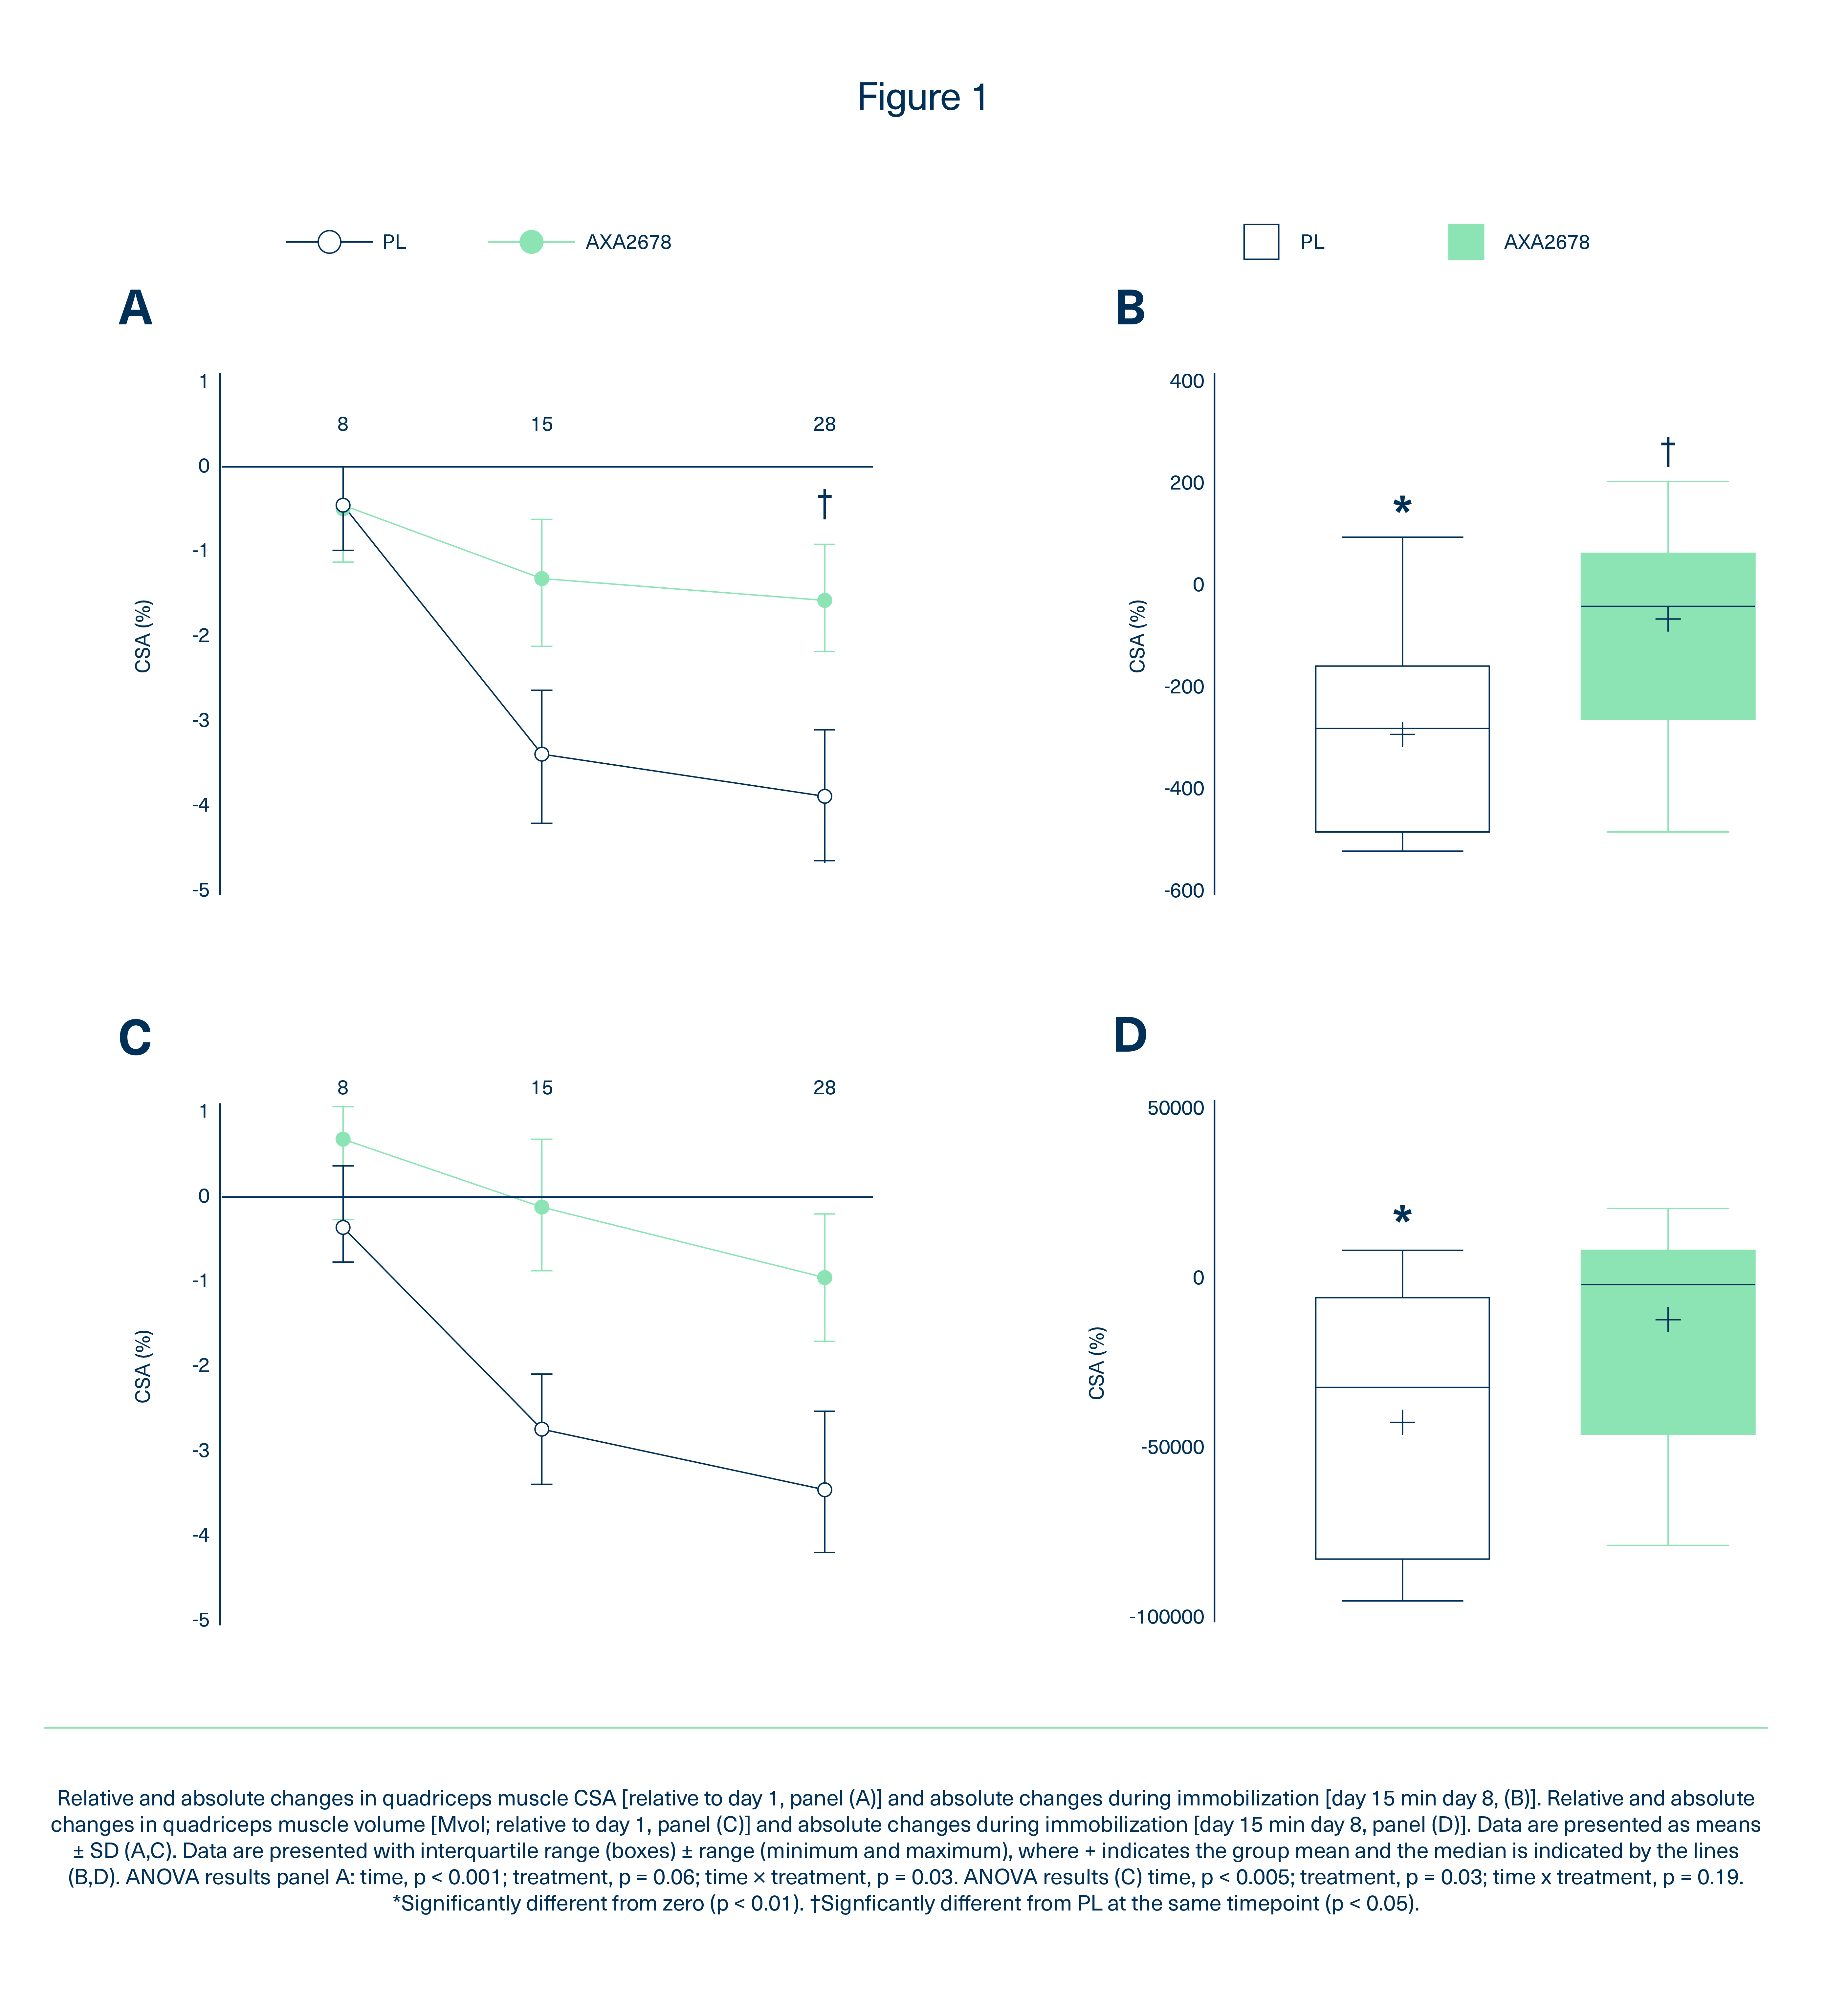 EAAs + NEAAs protected against muscle atrophy and decreased the amount of fat stored.